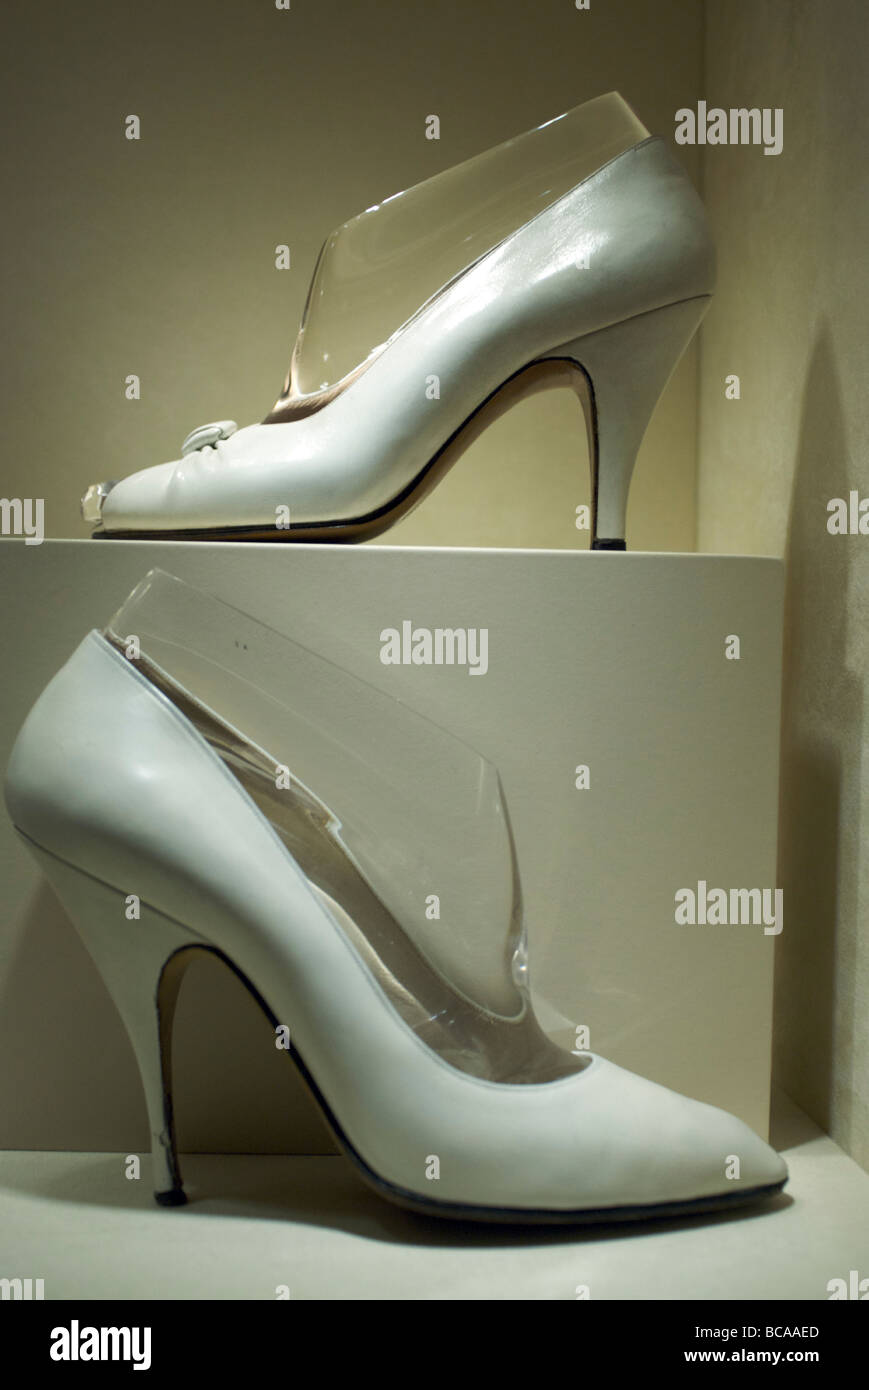 Exposition of Ferragamo's shoes. Opened in 1995 , the Salvatore Ferragamo Museum was designed to show the public - Stock Image